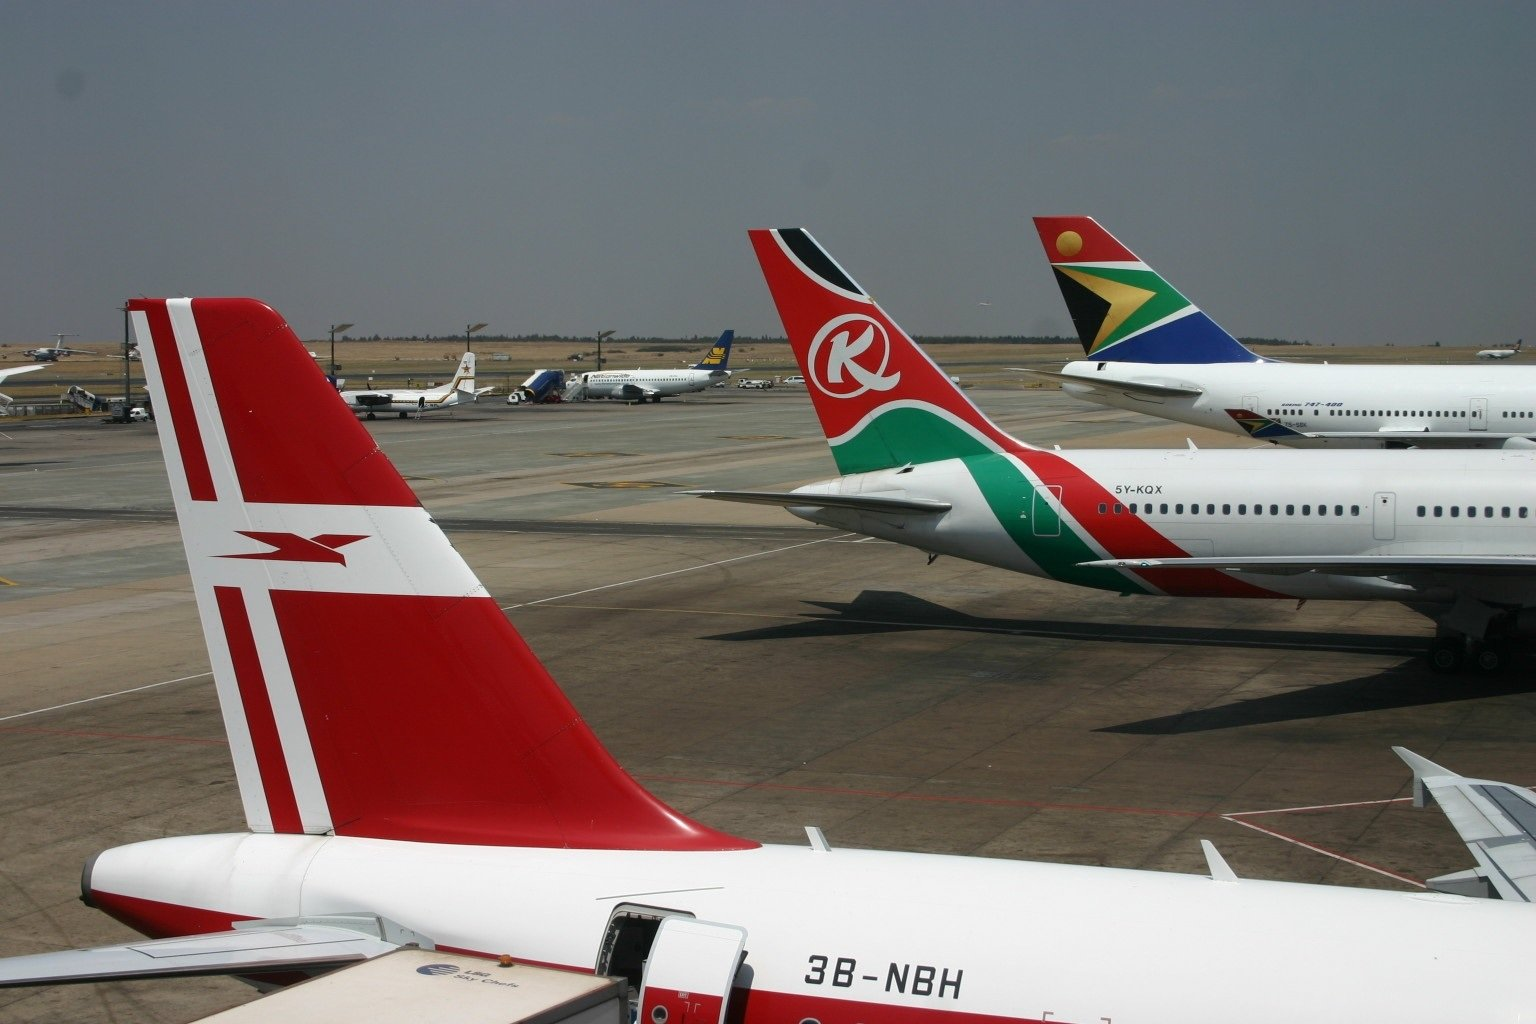 Several African airlines at OR Tambo